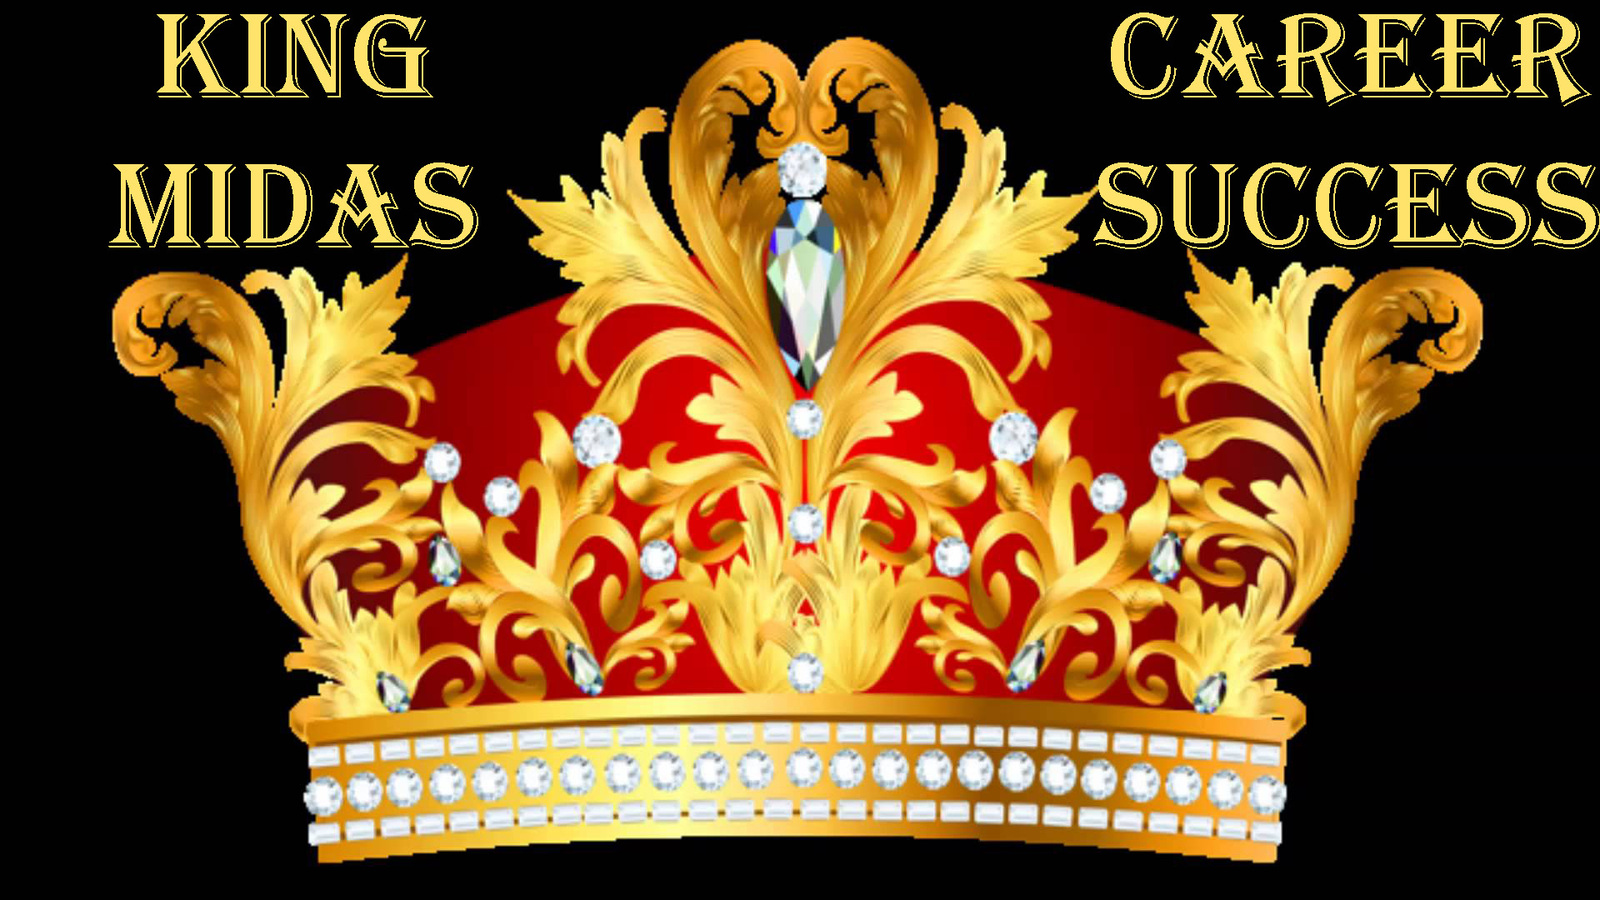 FULL COVEN 27X KING MIDAS WEALTH CAREER SUCCESS Magick 925 99 Witch CASSIA4 - $38.00